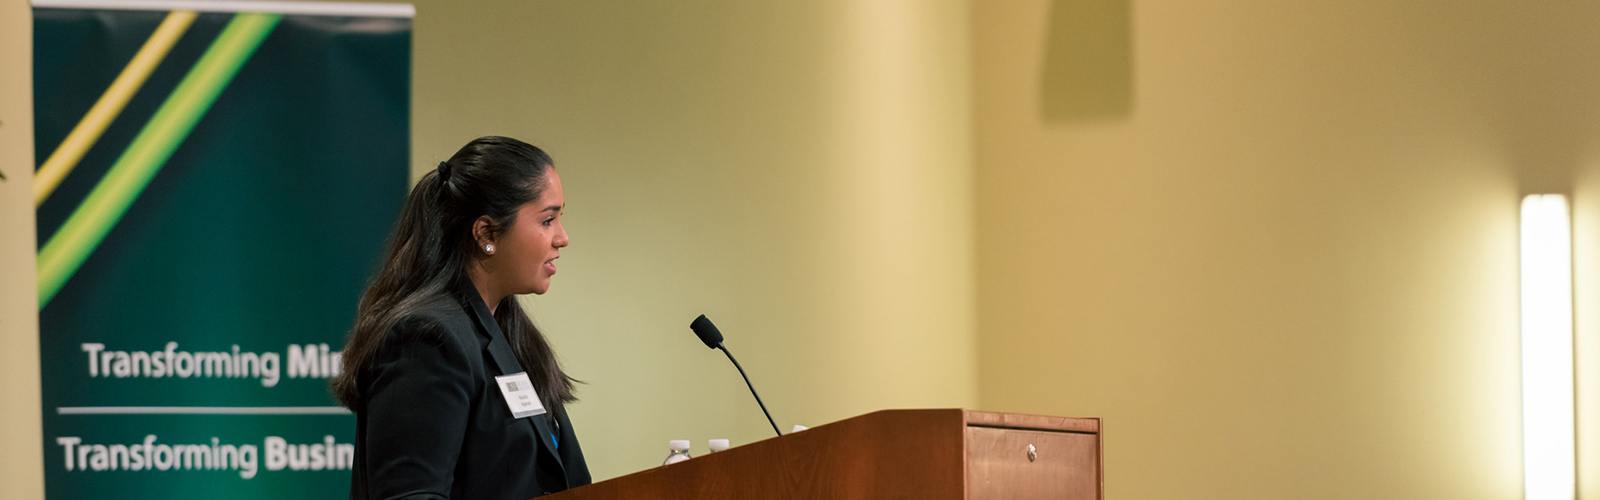 Nandini Agarwall speaks at Muma College of Business Scholarship Lunch. <span class='image-credits'>Courtesy of USF Muma College of Business</span>